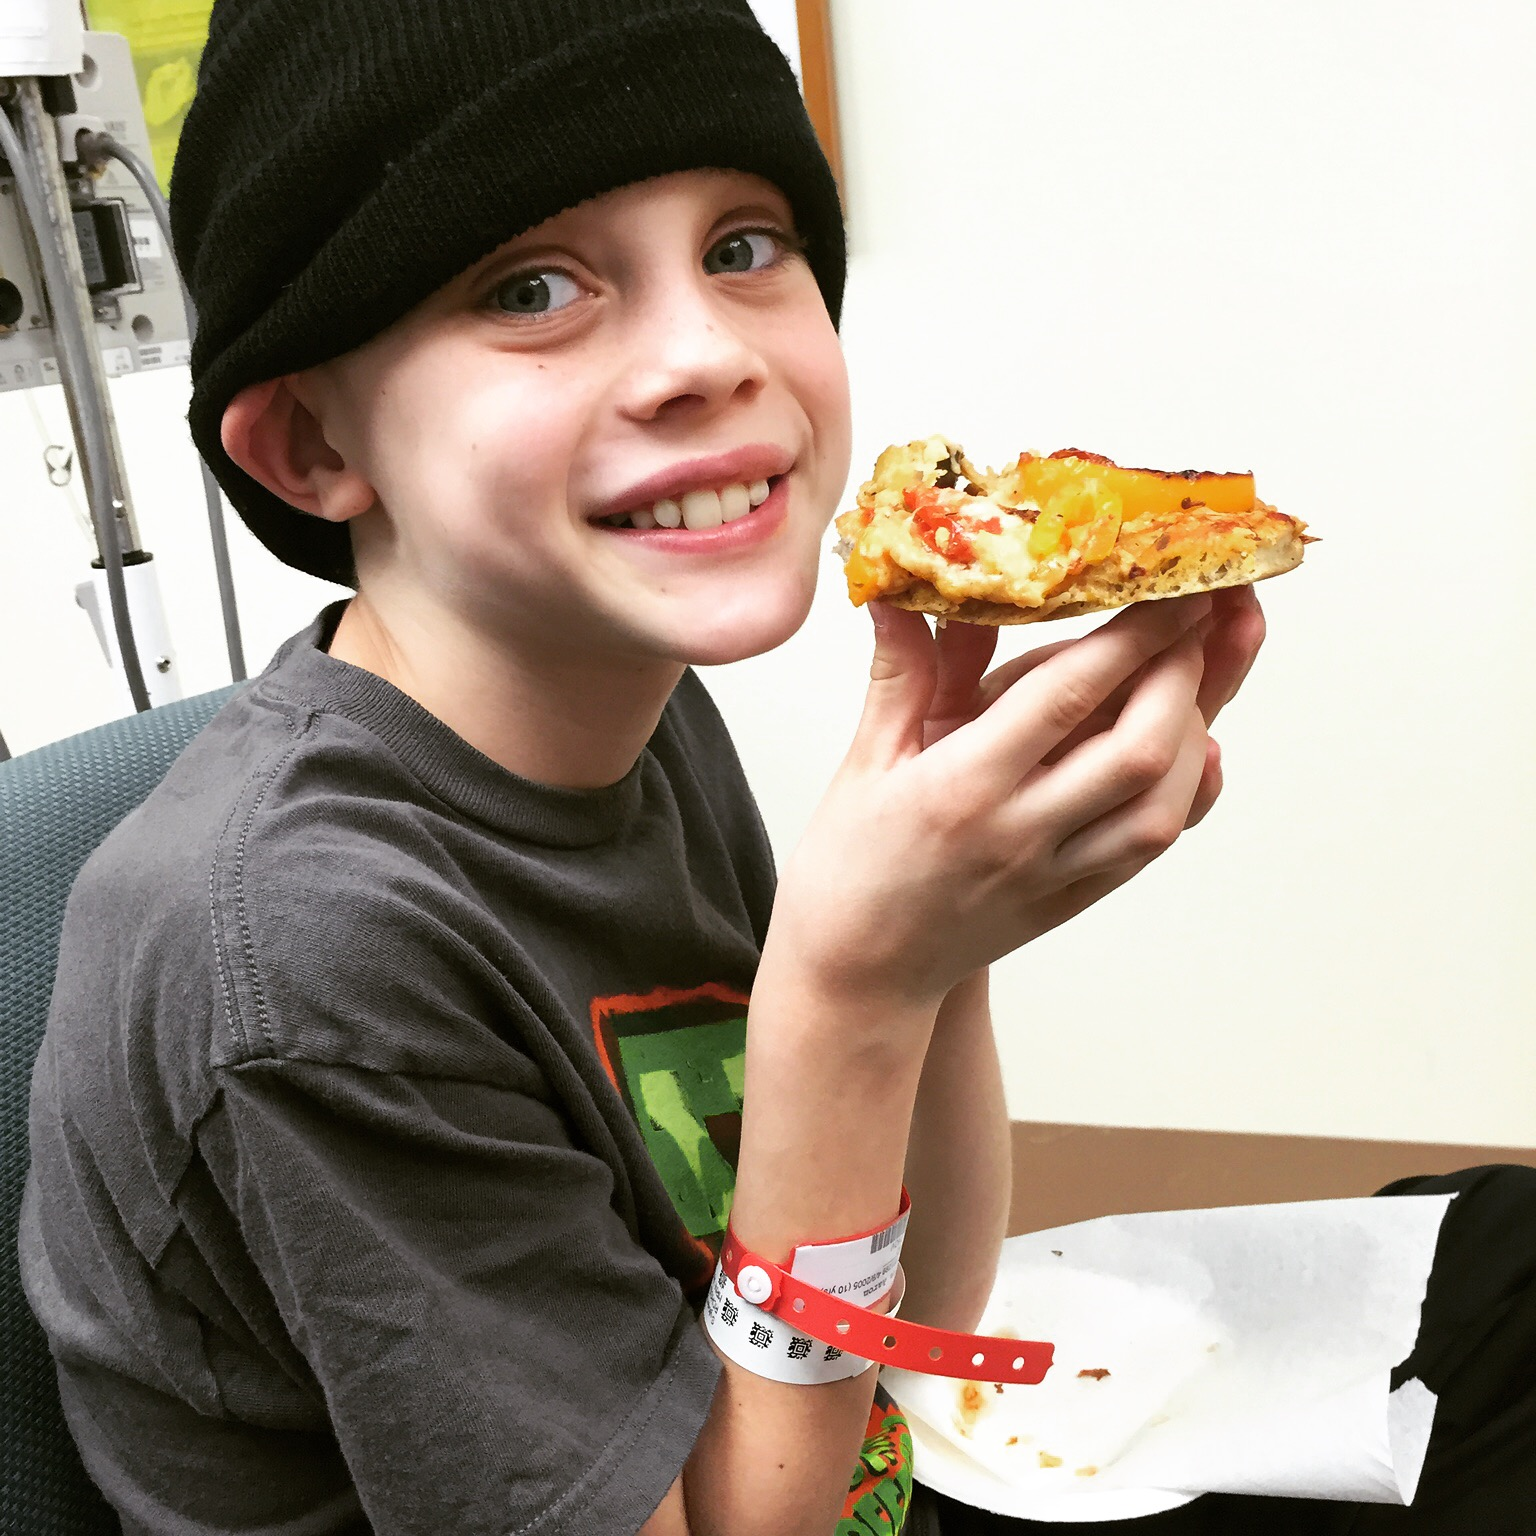 What Foods Taste Good After Chemo